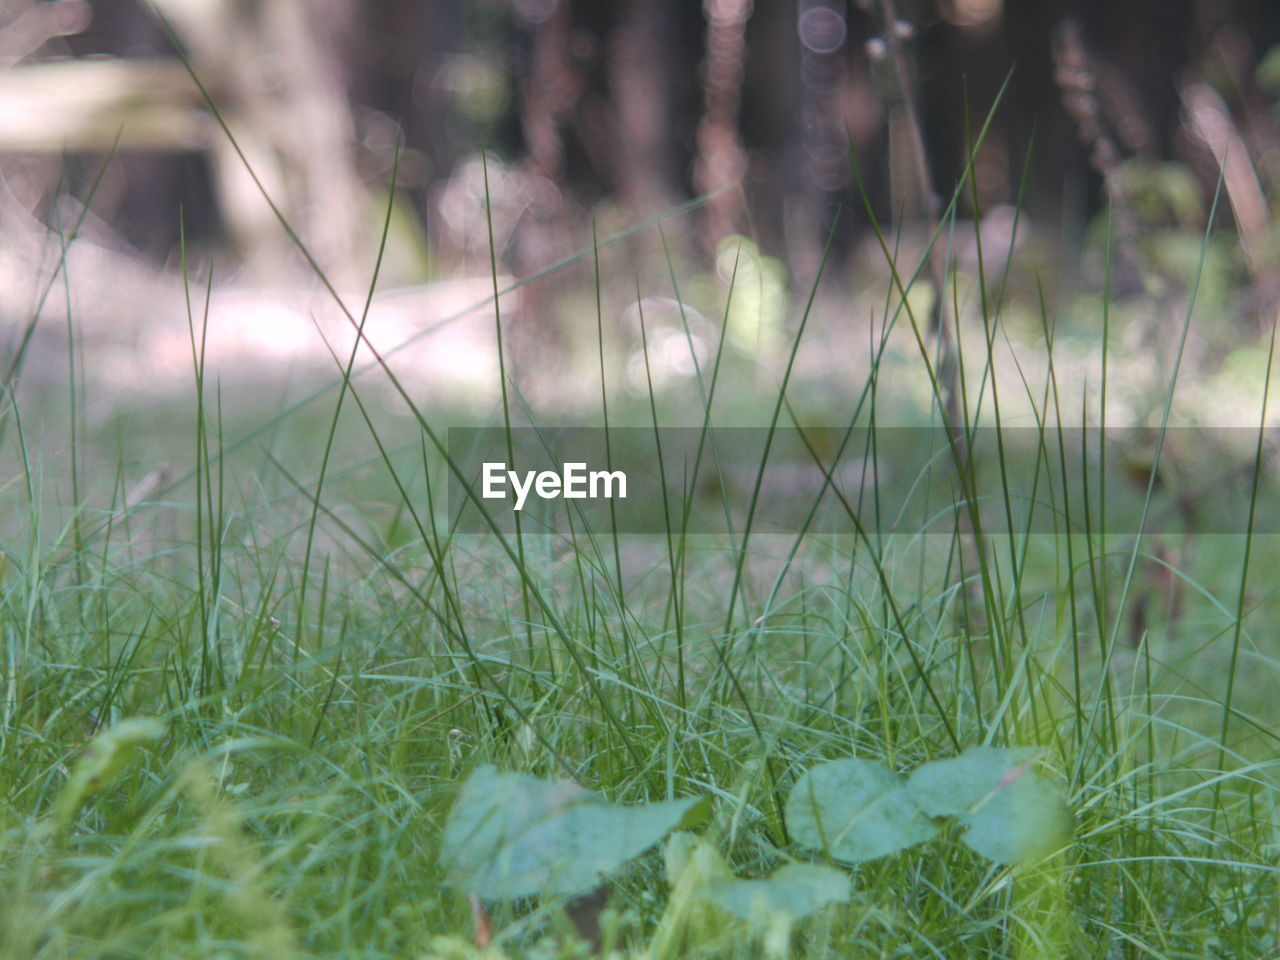 plant, growth, grass, green color, land, field, nature, selective focus, tranquility, day, no people, beauty in nature, close-up, freshness, outdoors, flower, flowering plant, focus on foreground, environment, tranquil scene, blade of grass